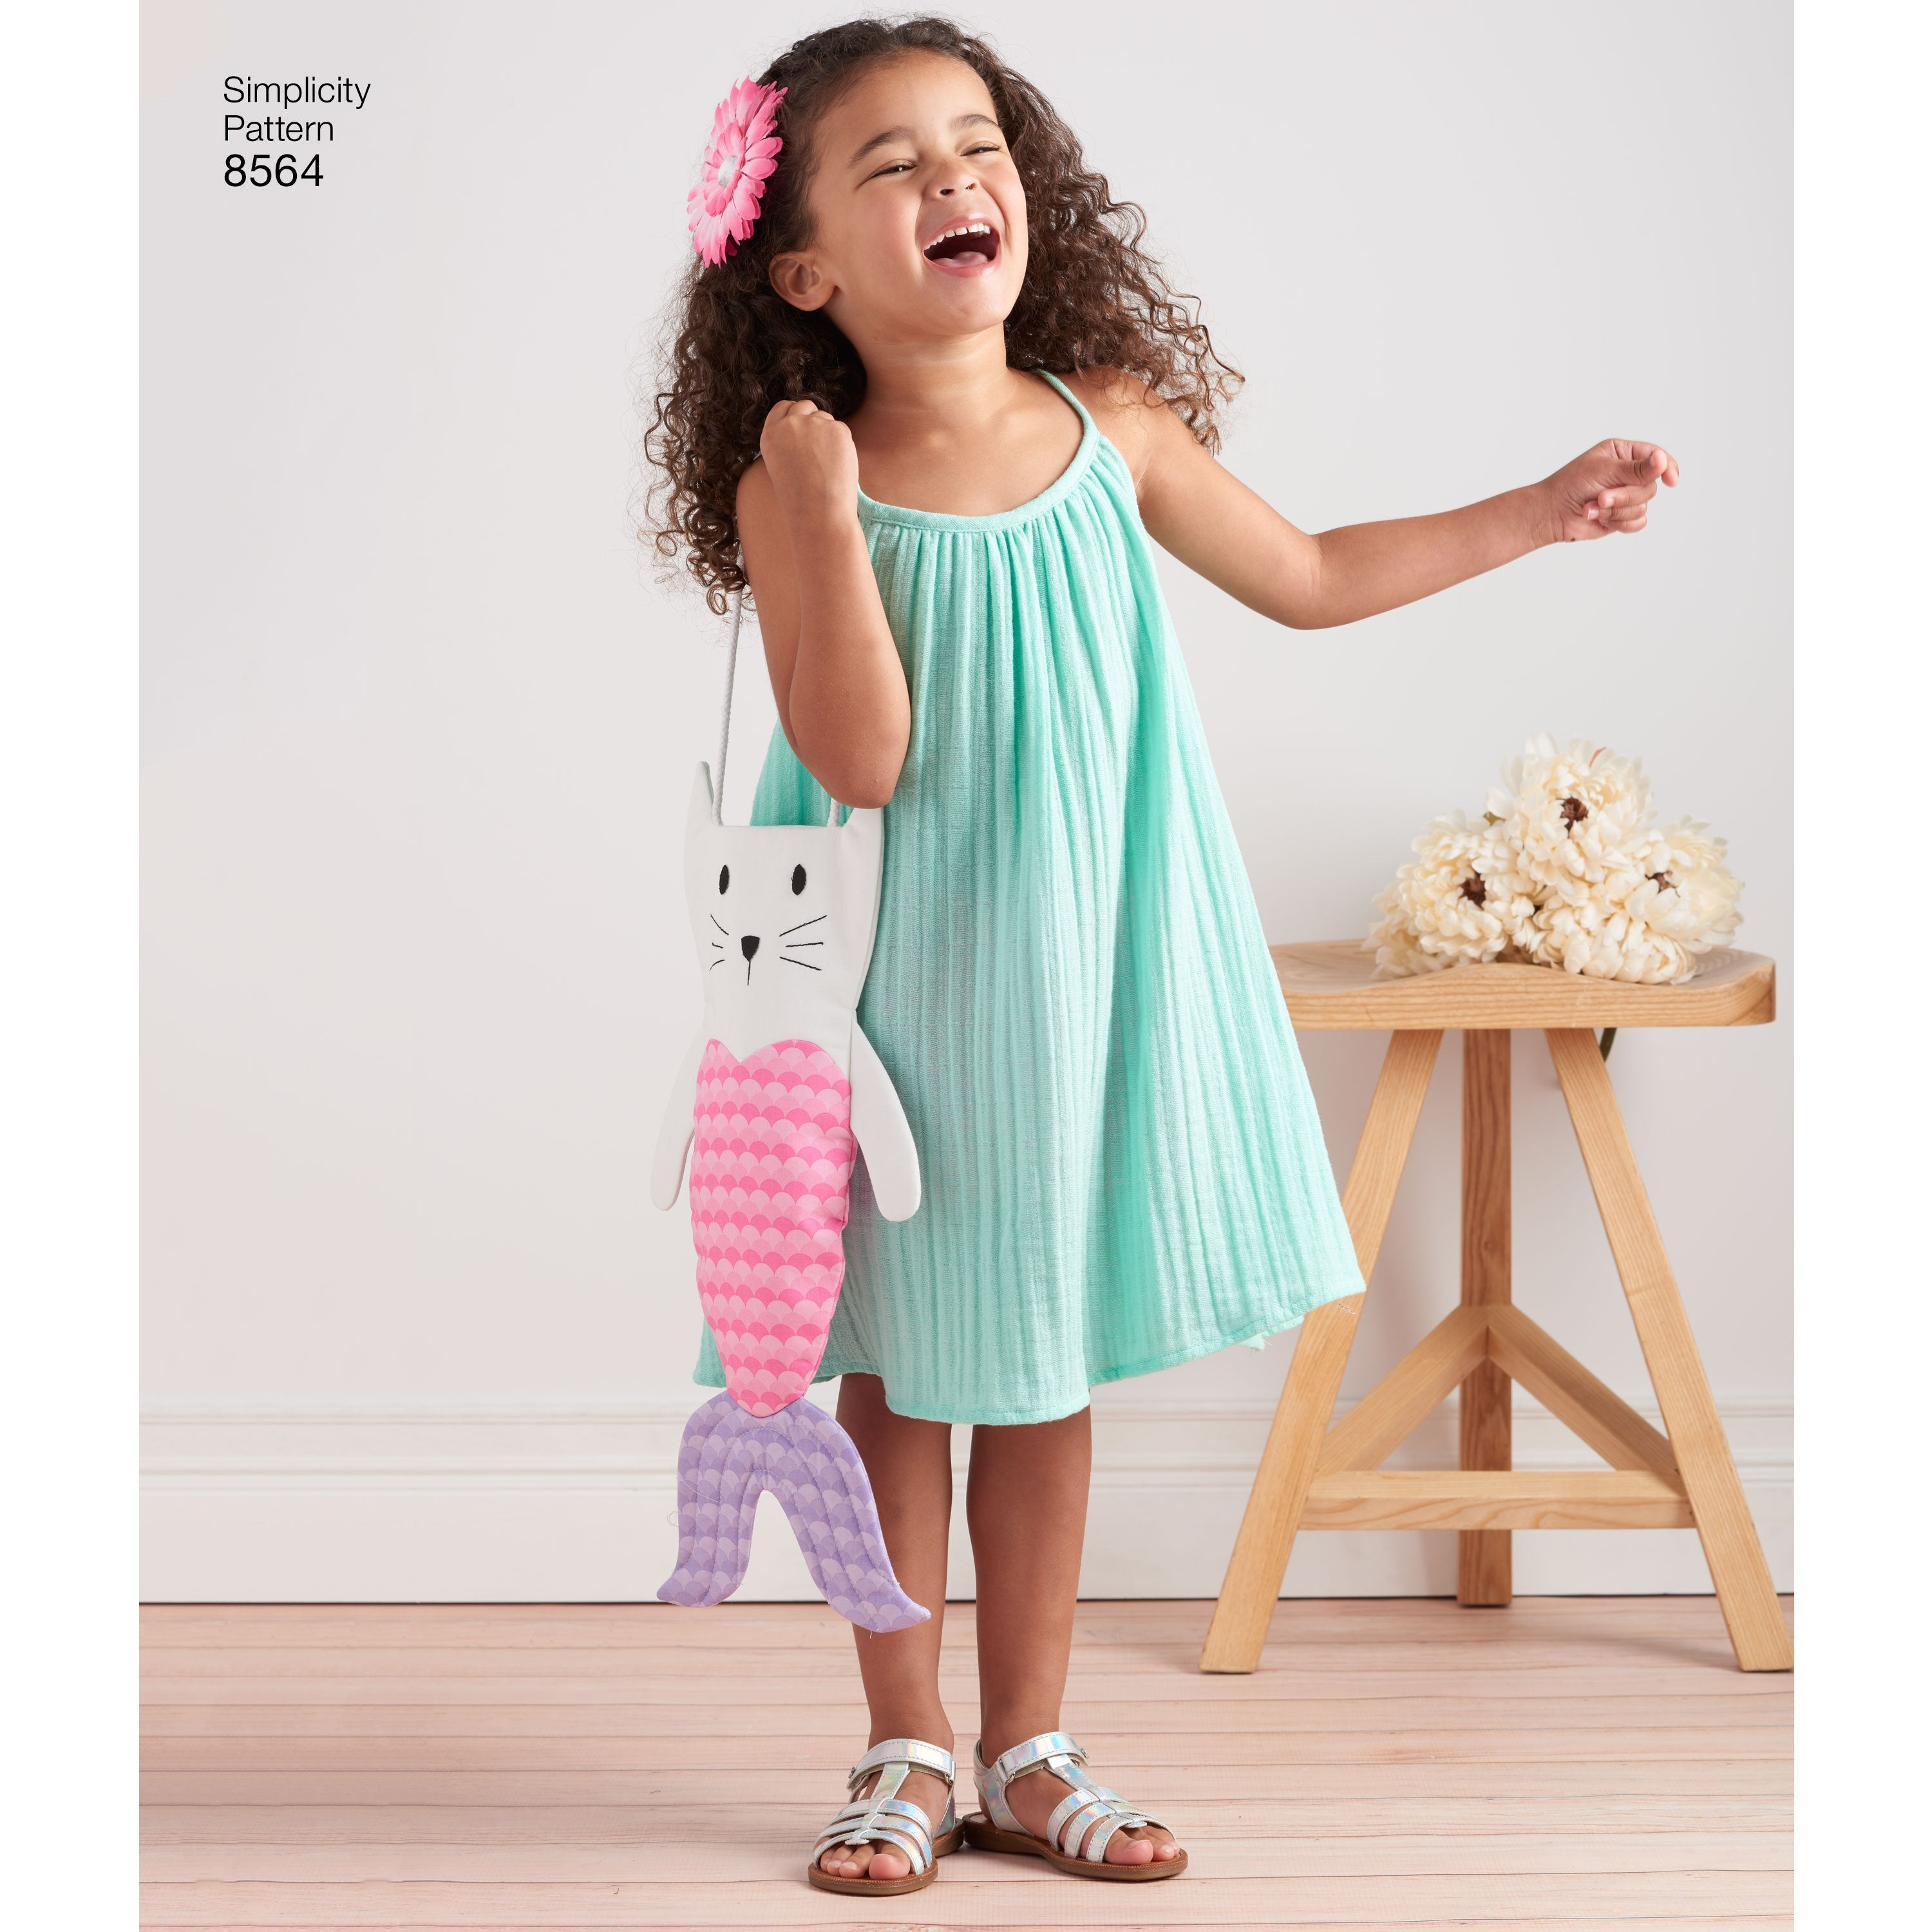 S8564 Child's Dress, Top, Shorts & Bag